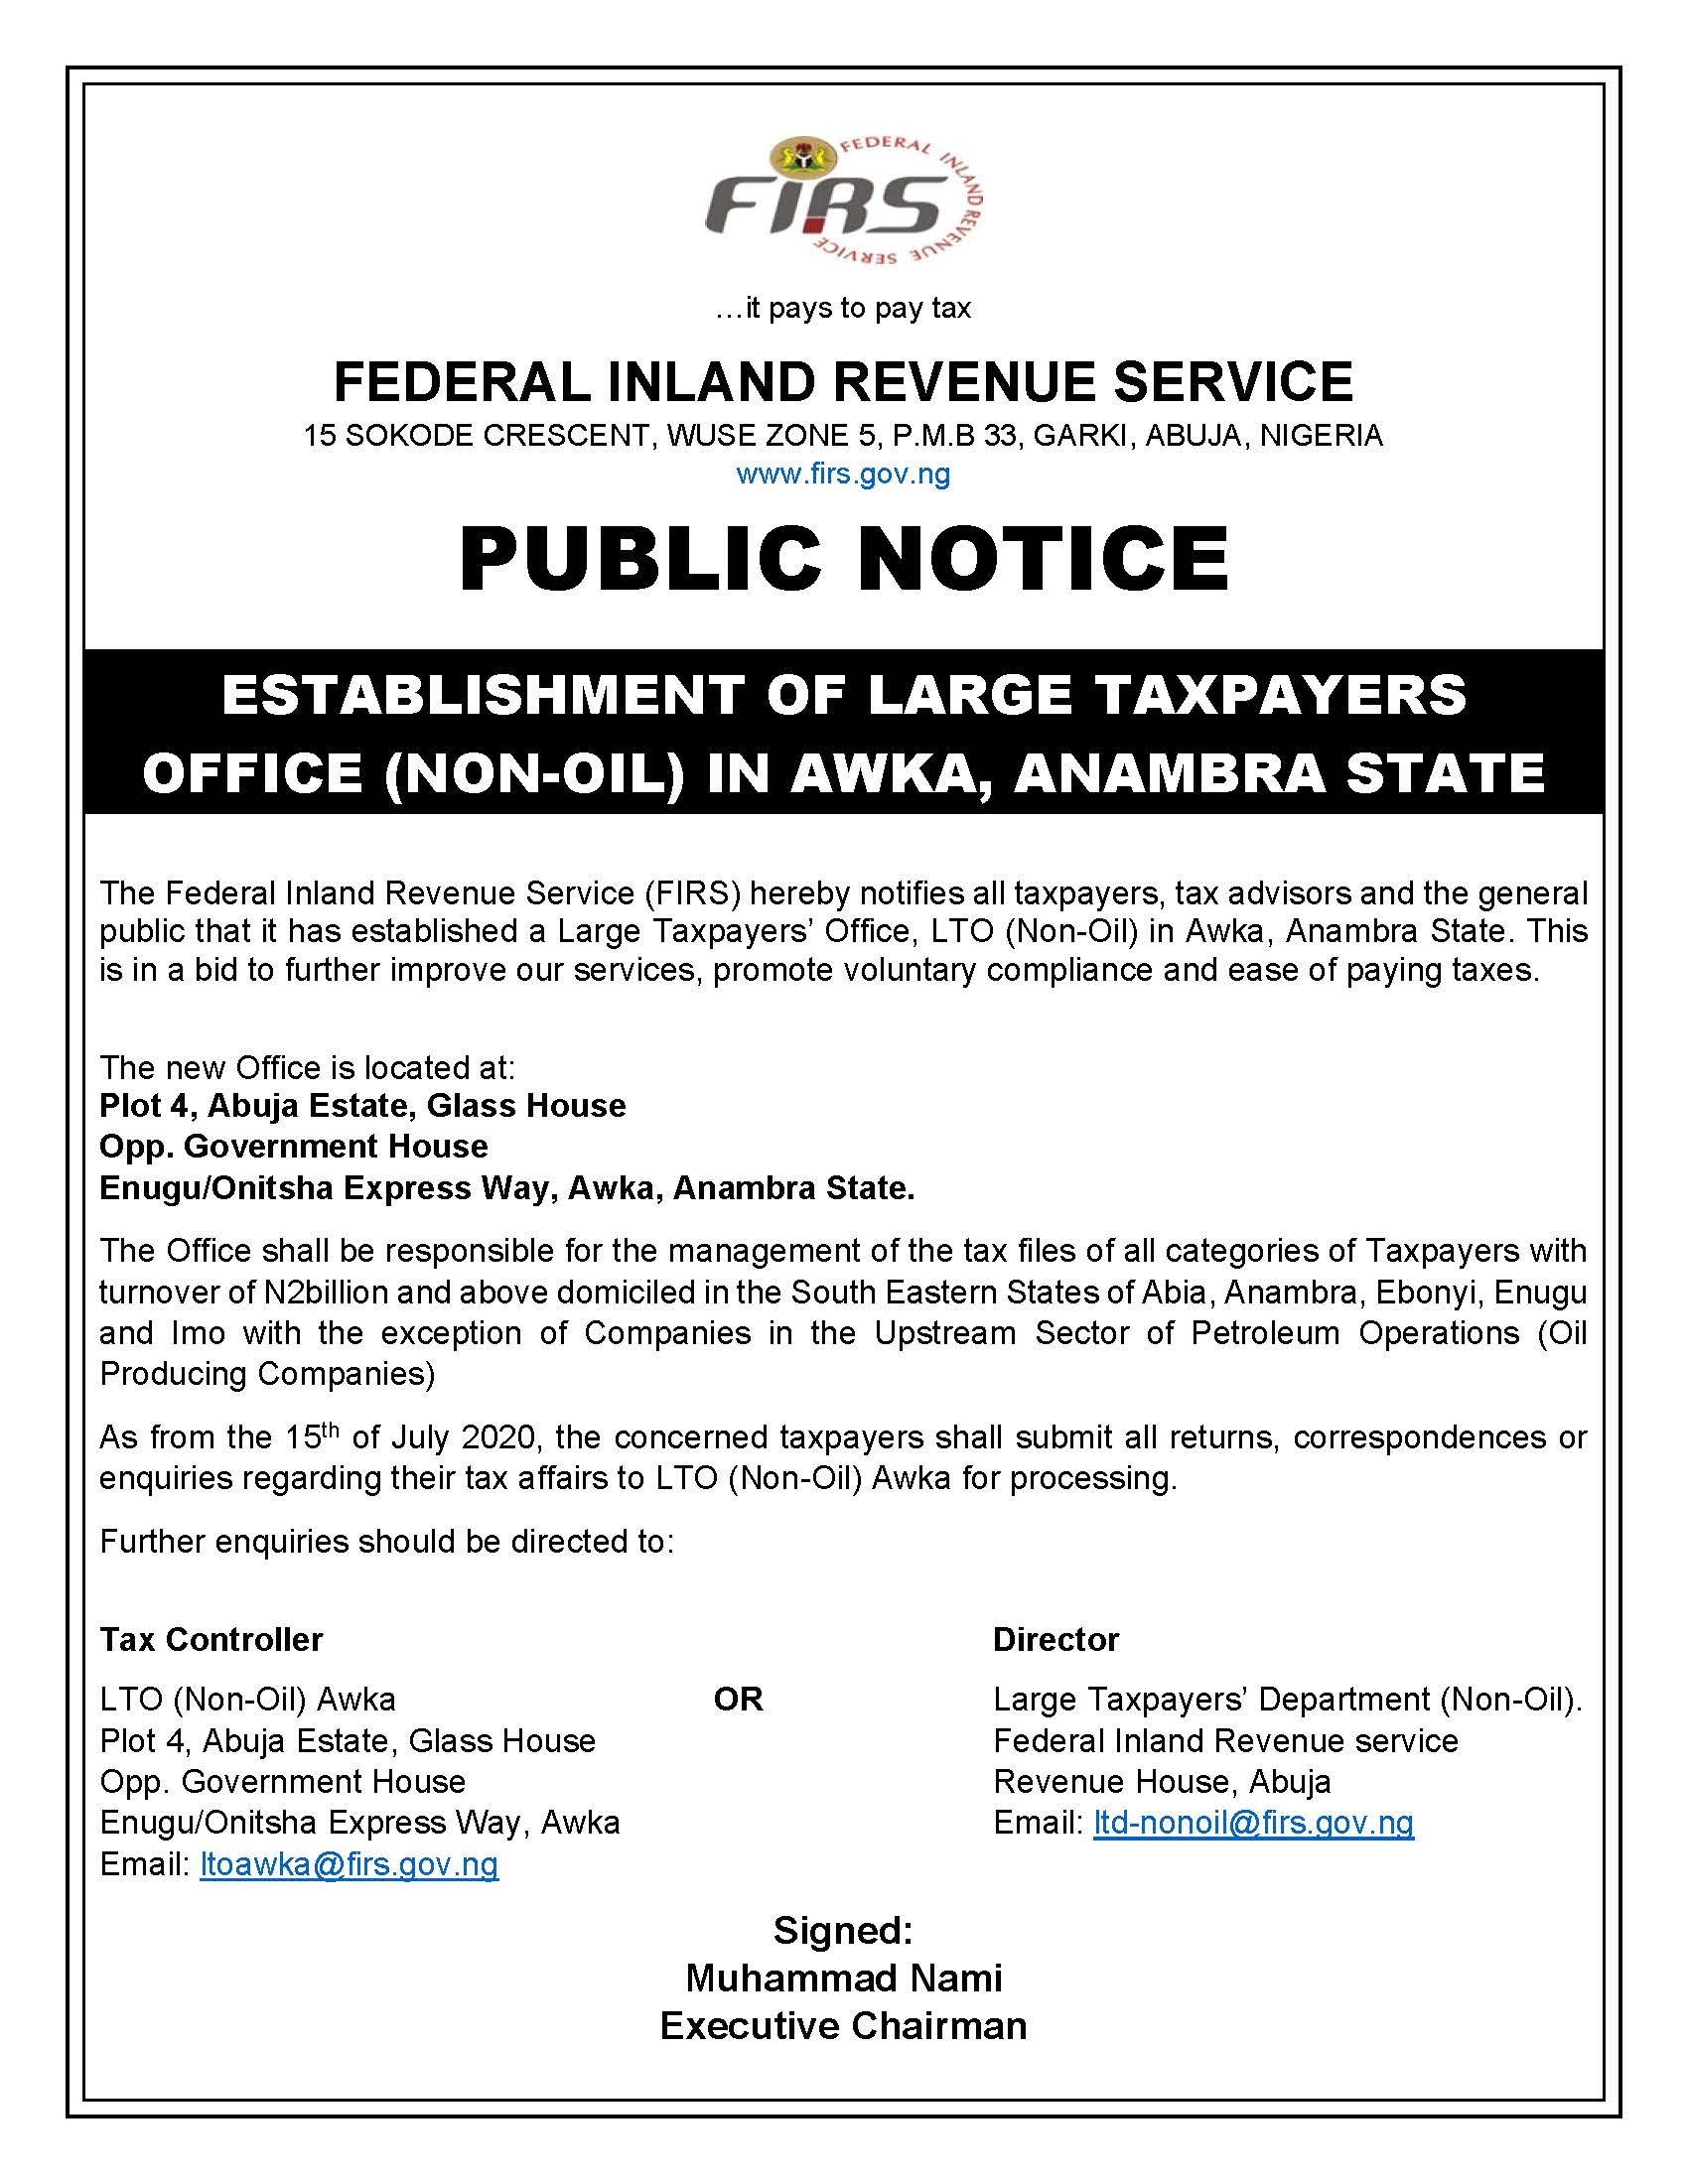 PUBLIC-NOTICE-ON-LTO-NON-OIL-AWKA.jpg